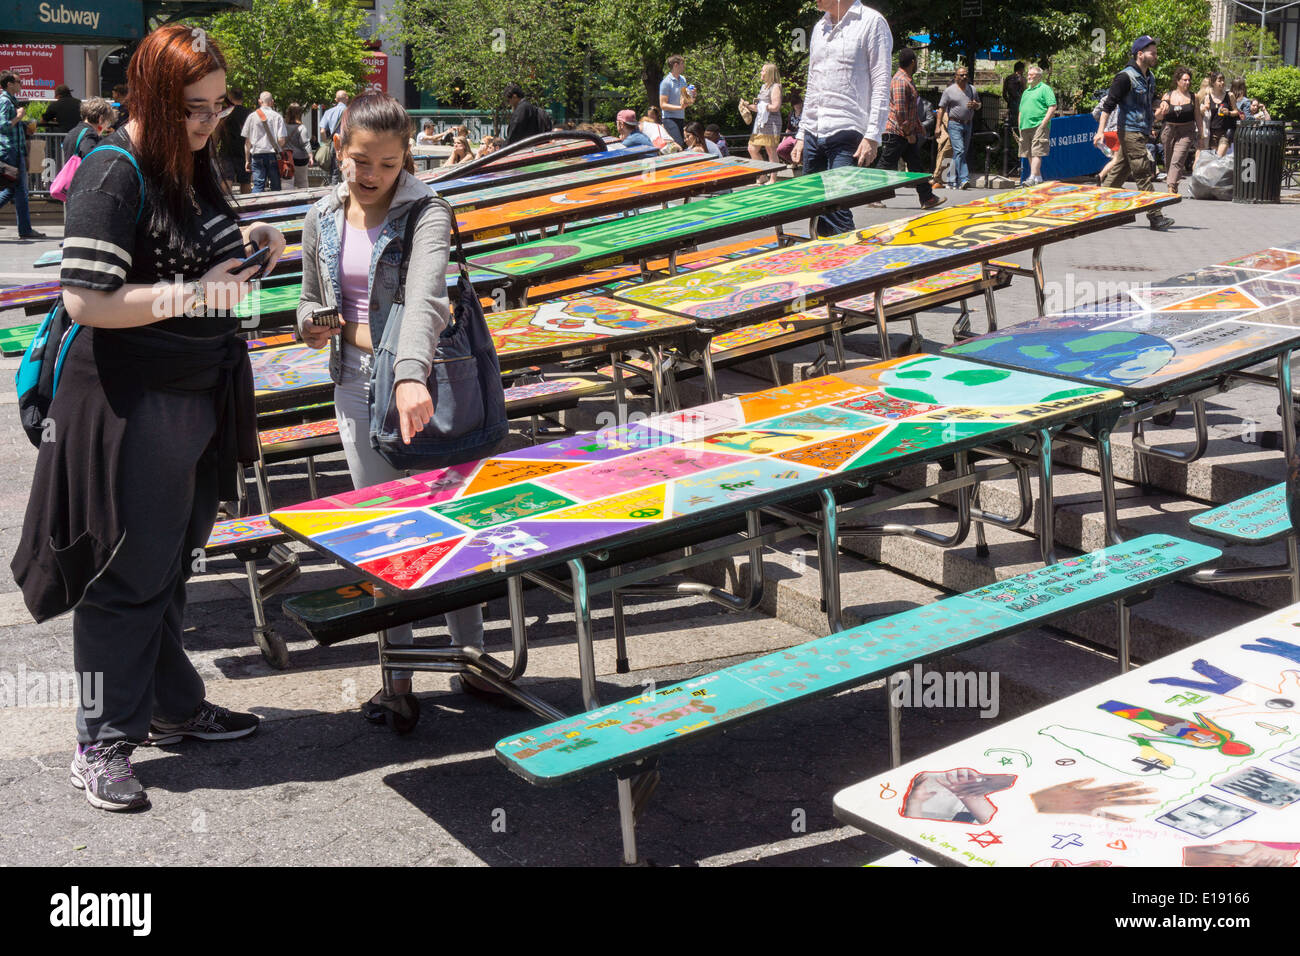 School lunchroom tables decorated with art representing various social issues are seen in Union Square Park in New York - Stock Image